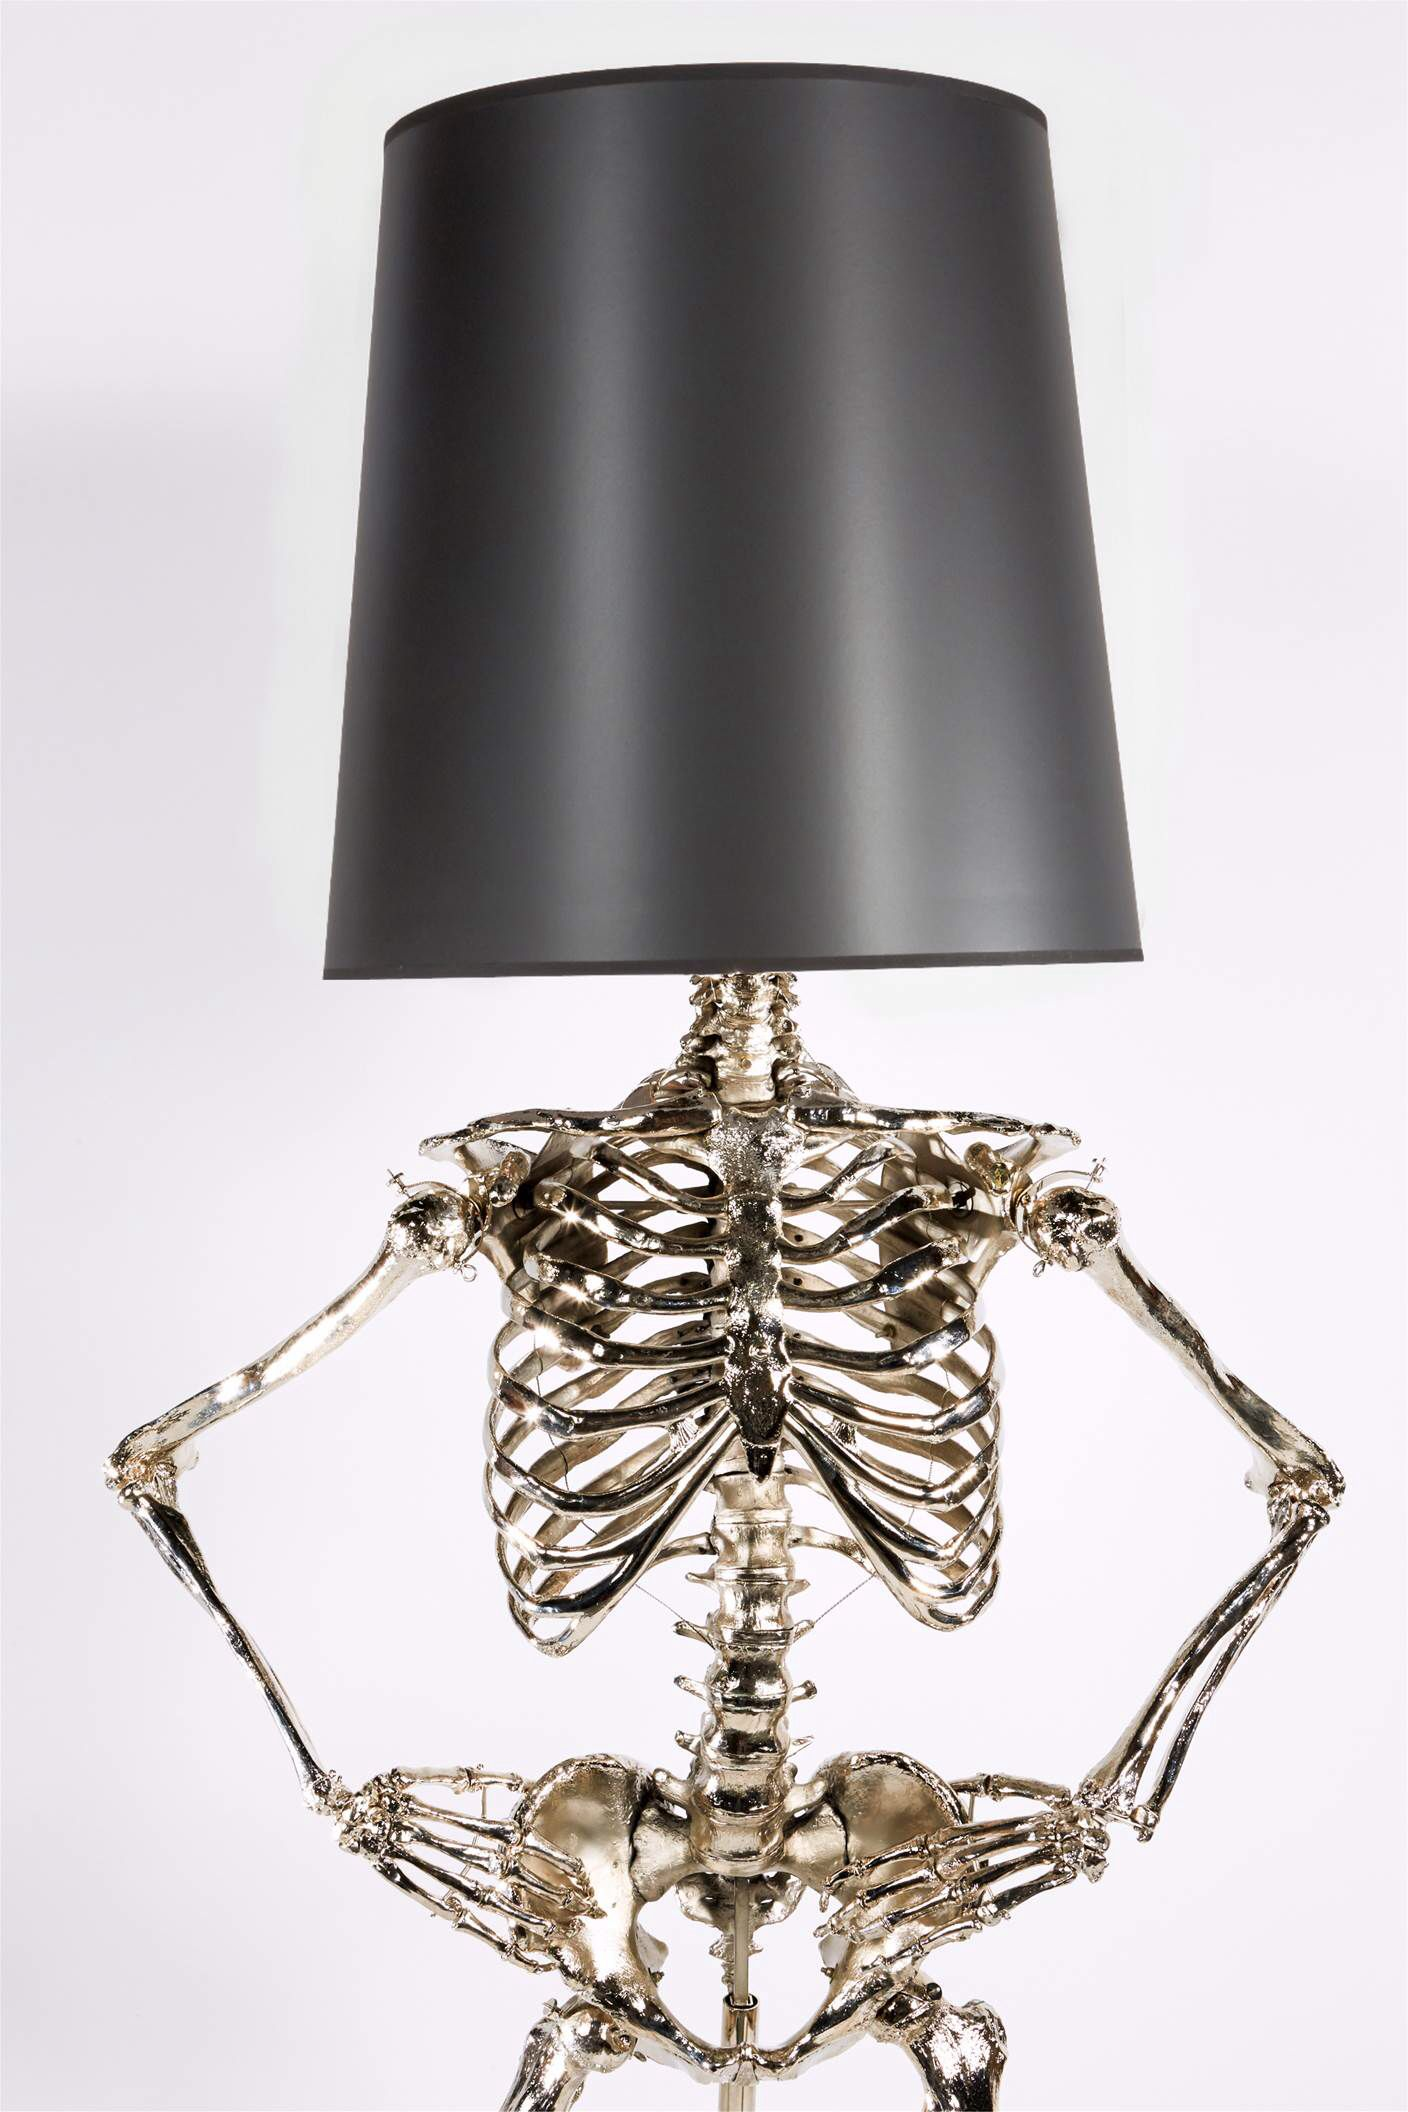 Creatively Spooky Pair It With Equally Attractive Wall Decor From Inkshuffle To Level Up Your Home S Interior Design Choo Funky Home Decor Skeleton Lamp Lamp